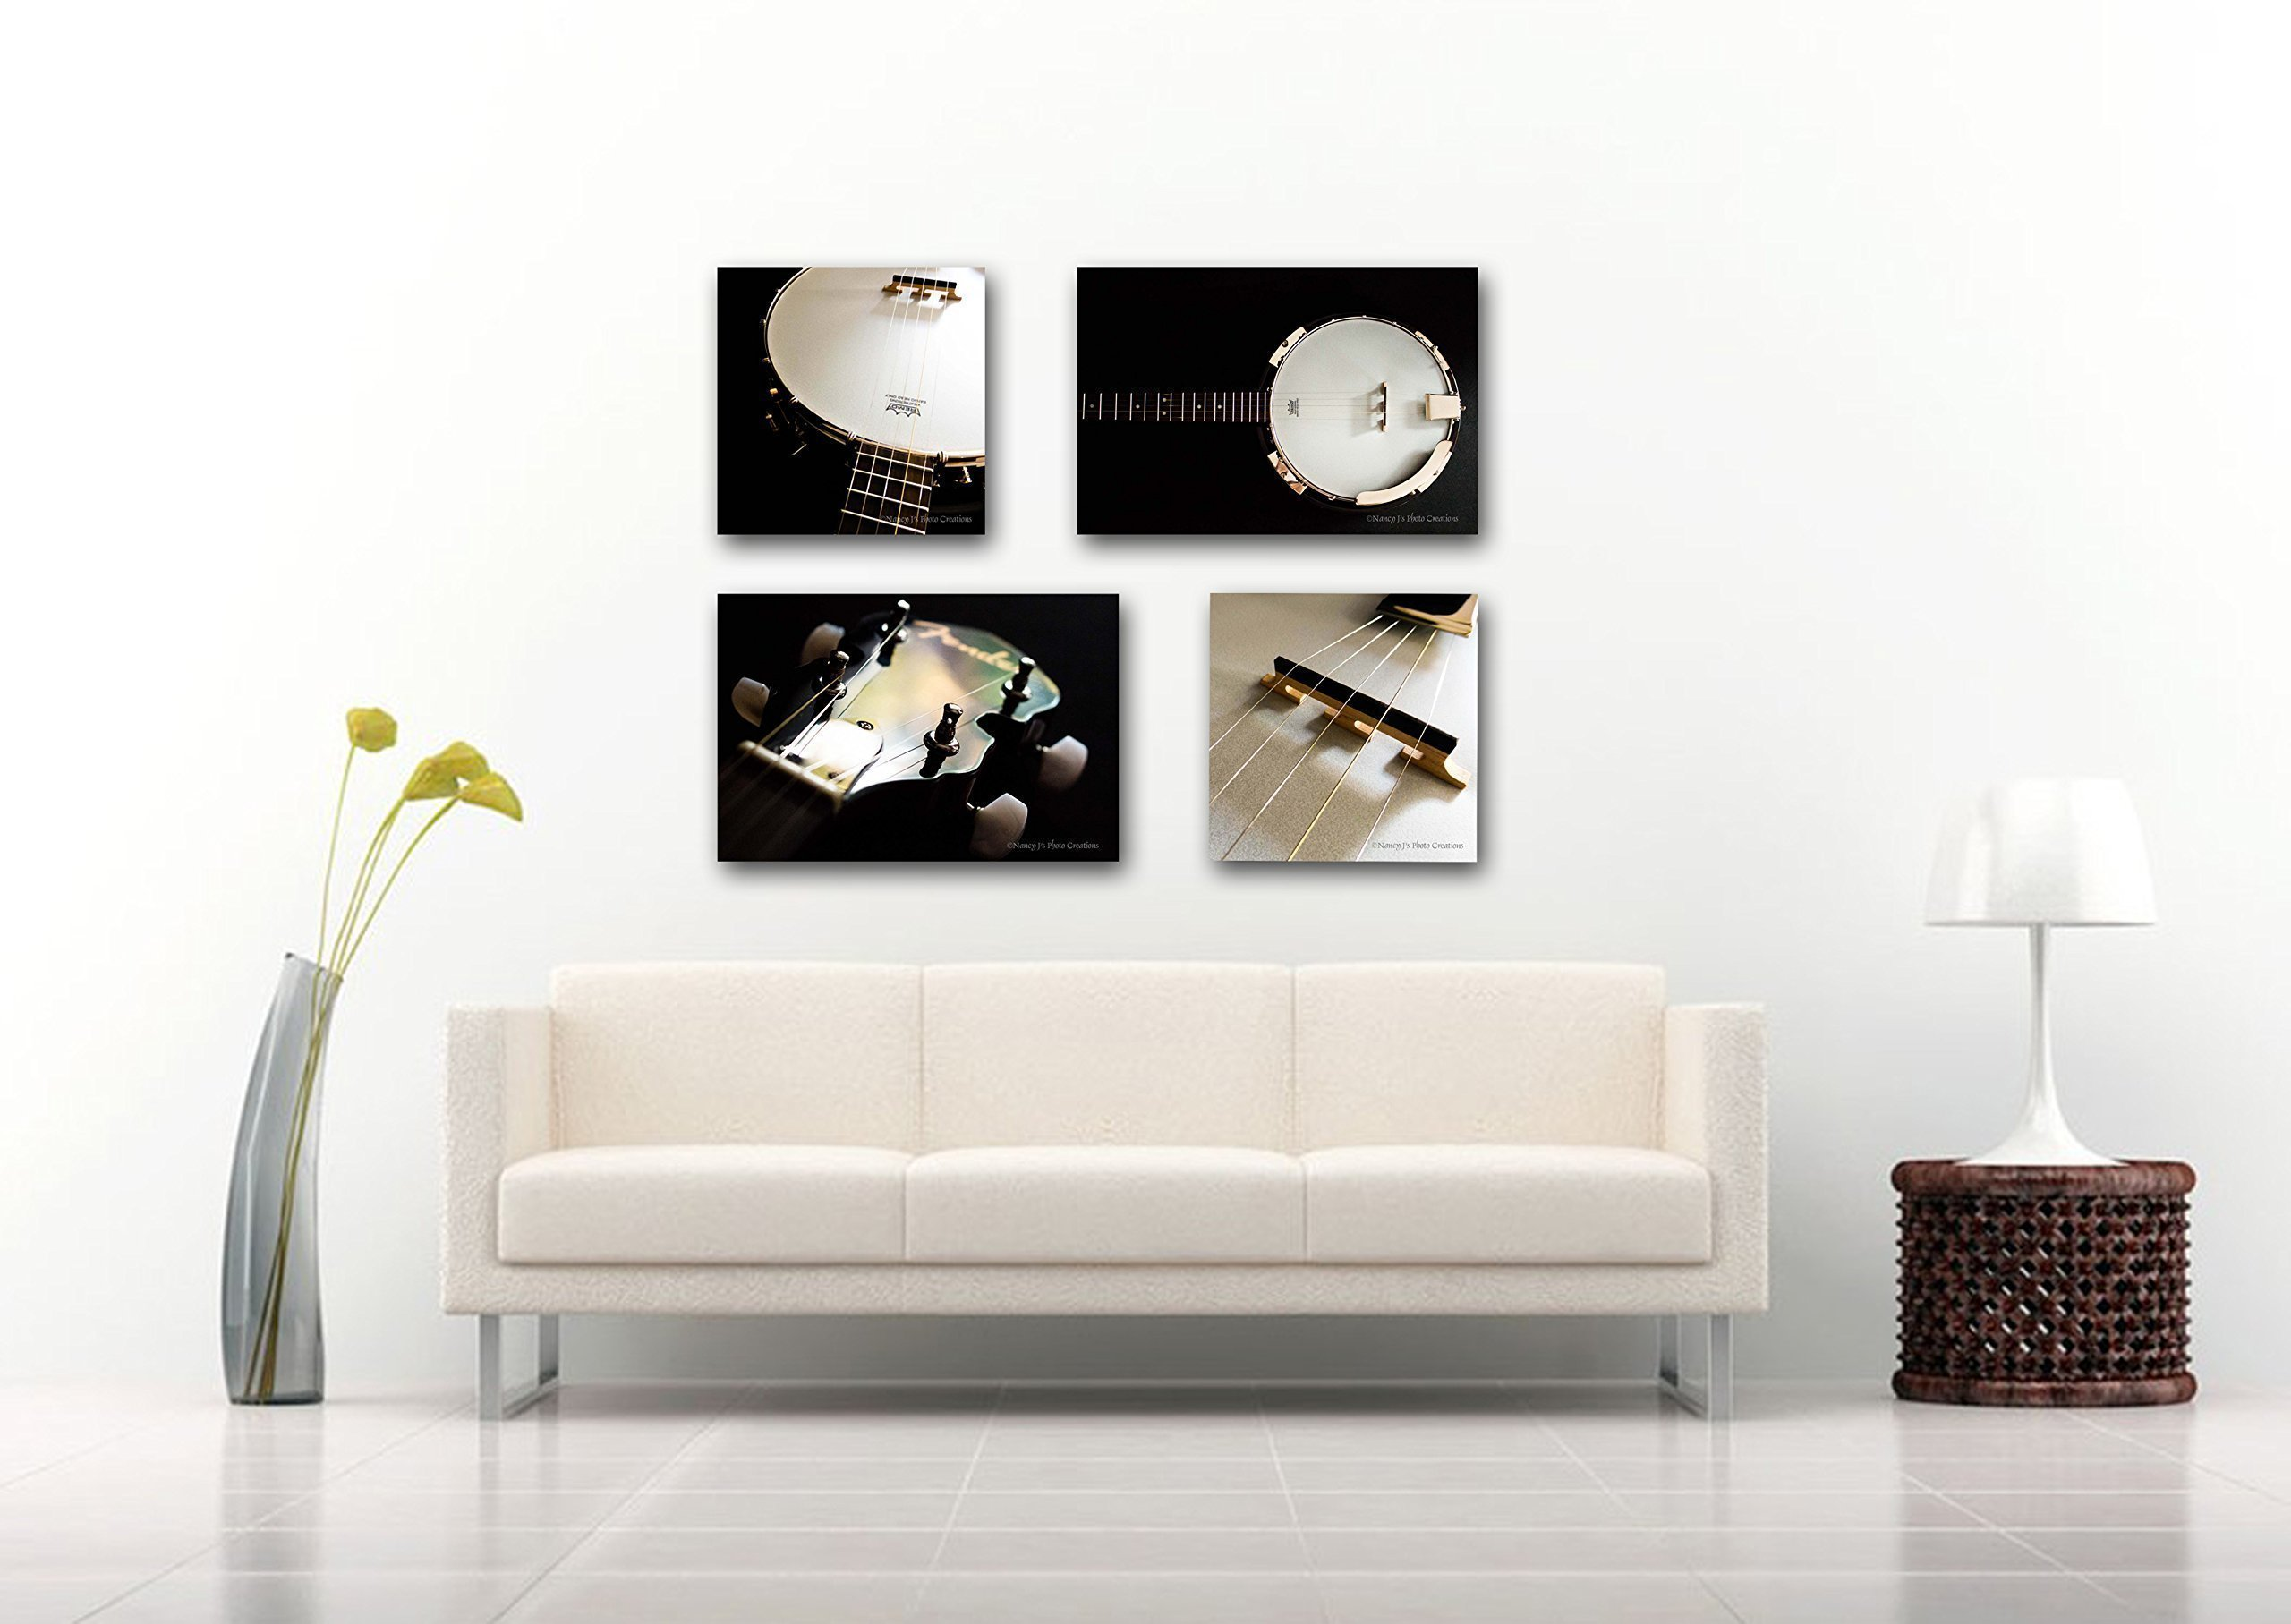 Banjo FOUR Photos on CANVAS SET Music Decor White Gold Black Musical Instrument Photography Home or Office Decor Gallery Wrapped Prints Ready to Hang 8x8 8x12 12x12 12x18 16x16 16x24 20x20 20x30